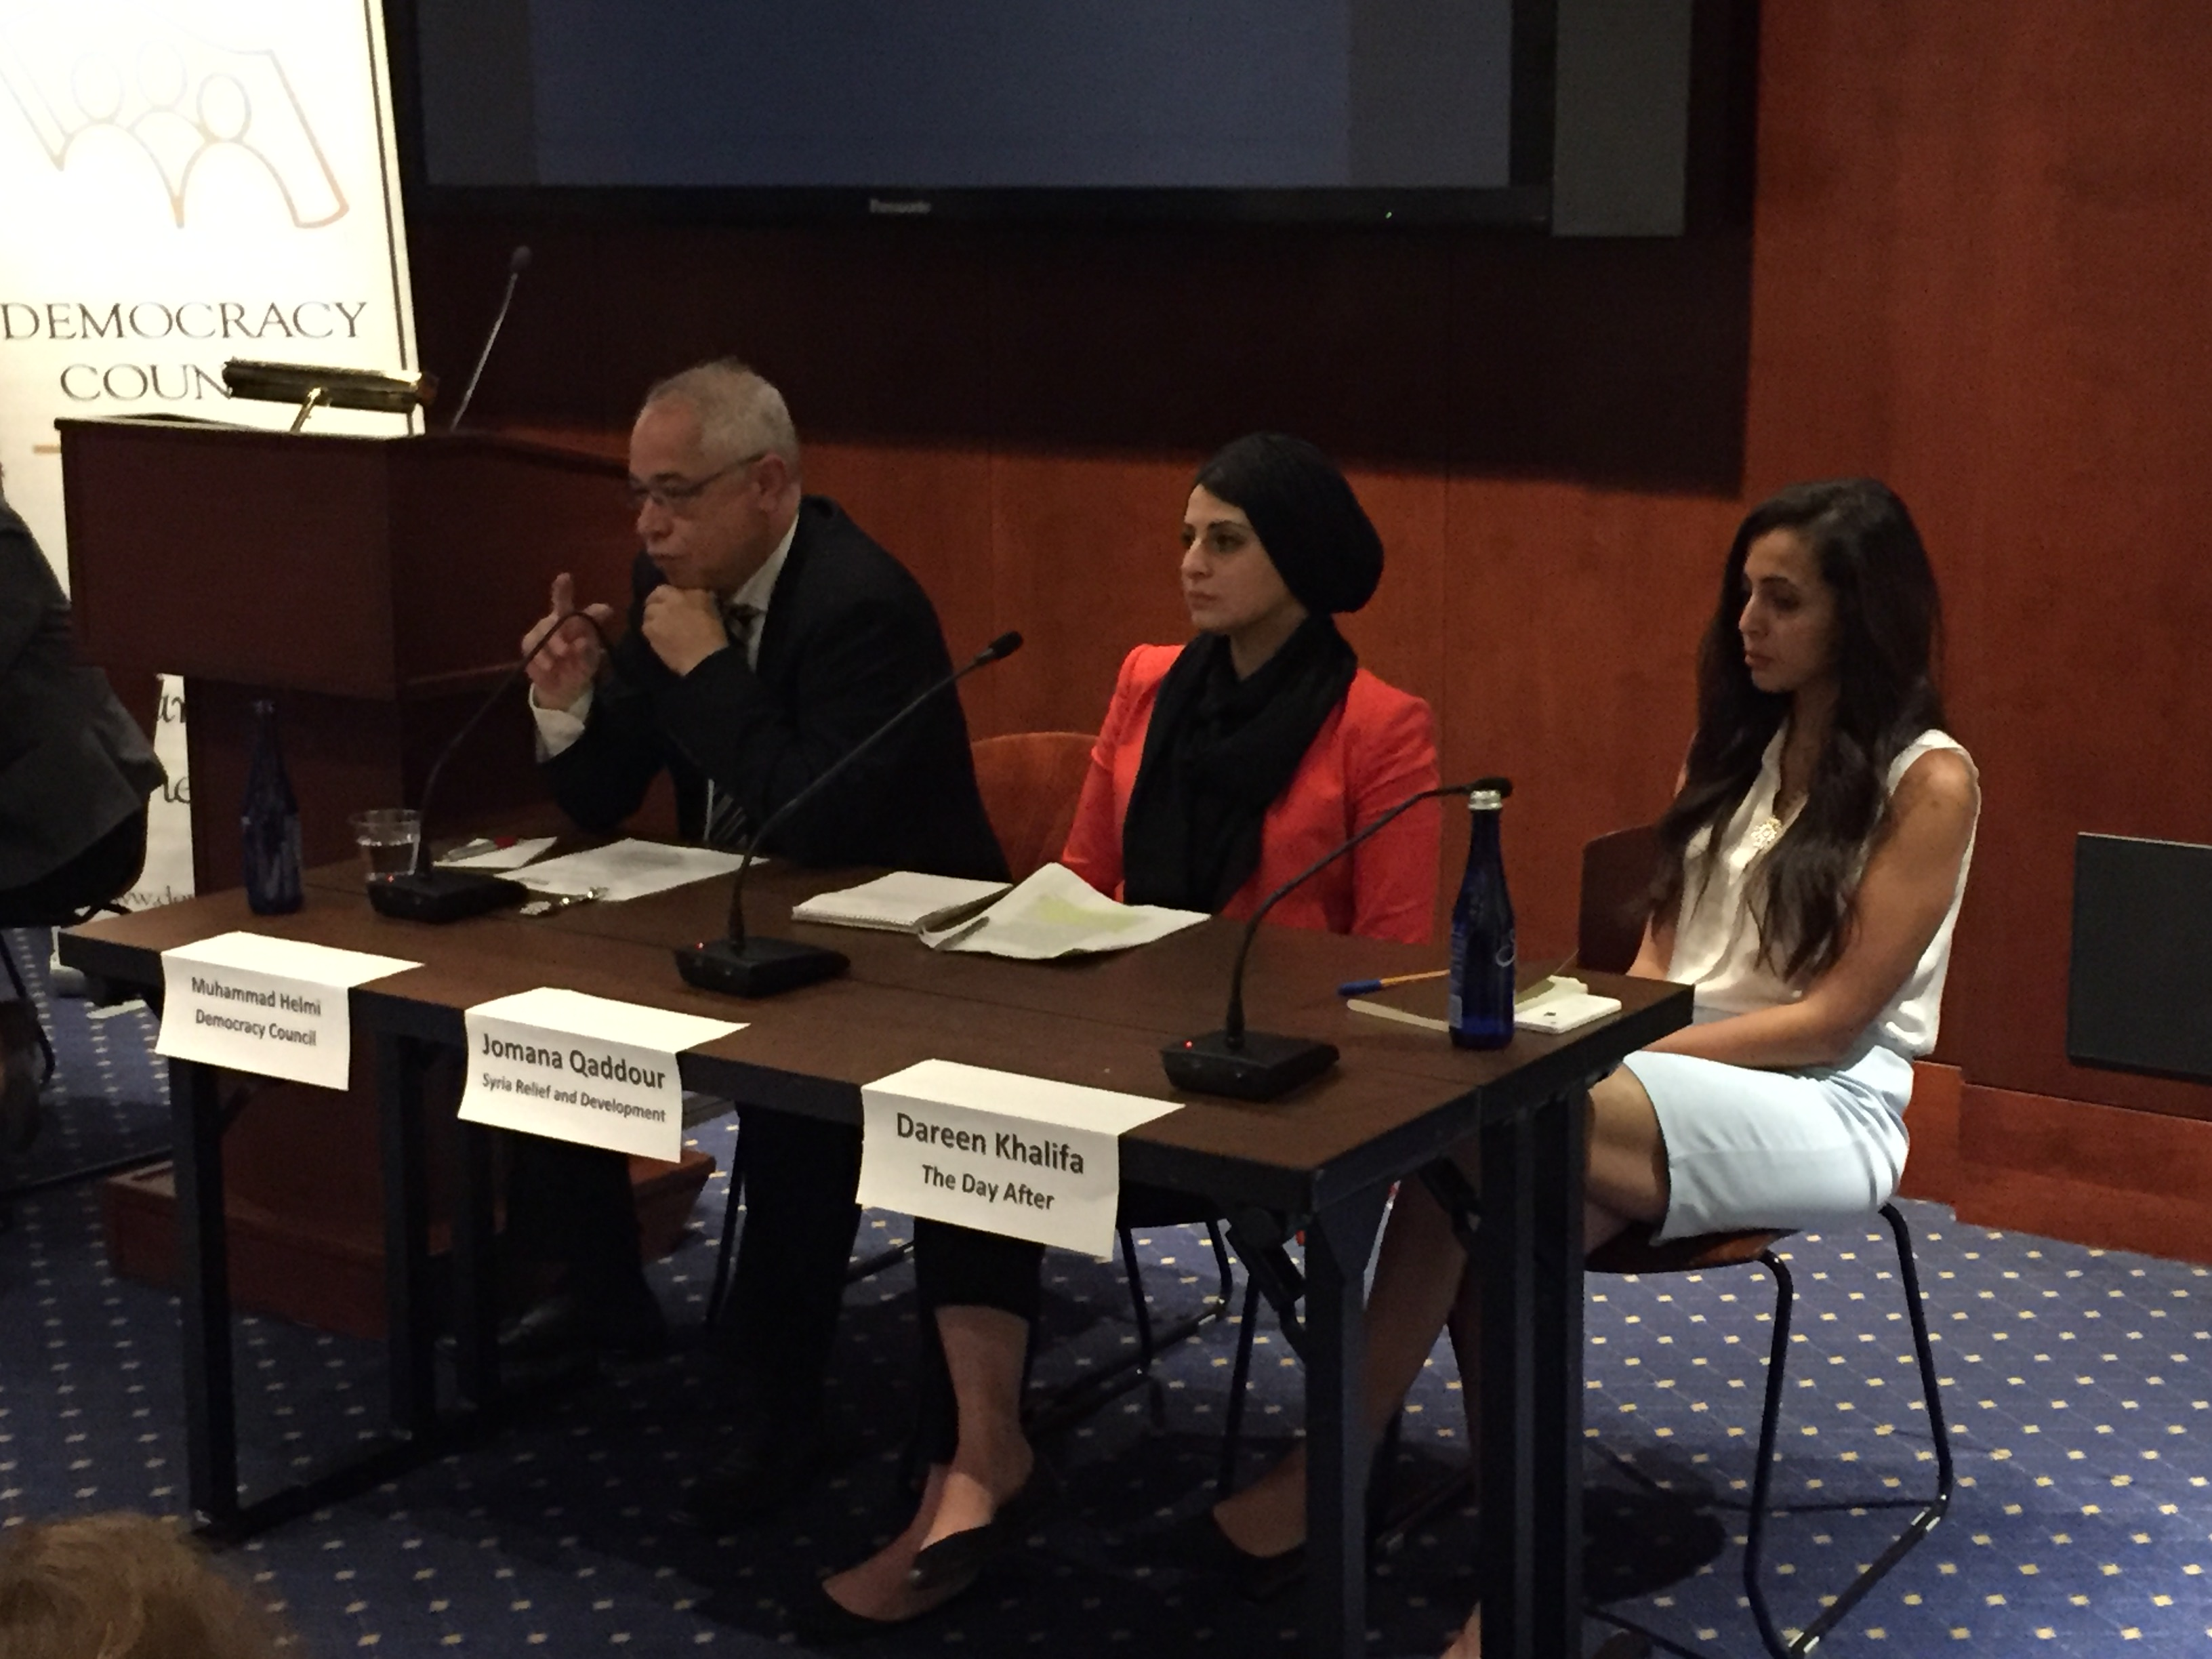 At Democracy Panel on Syria, Co-Founder Jomana Qaddour Discusses Education, Civil Society